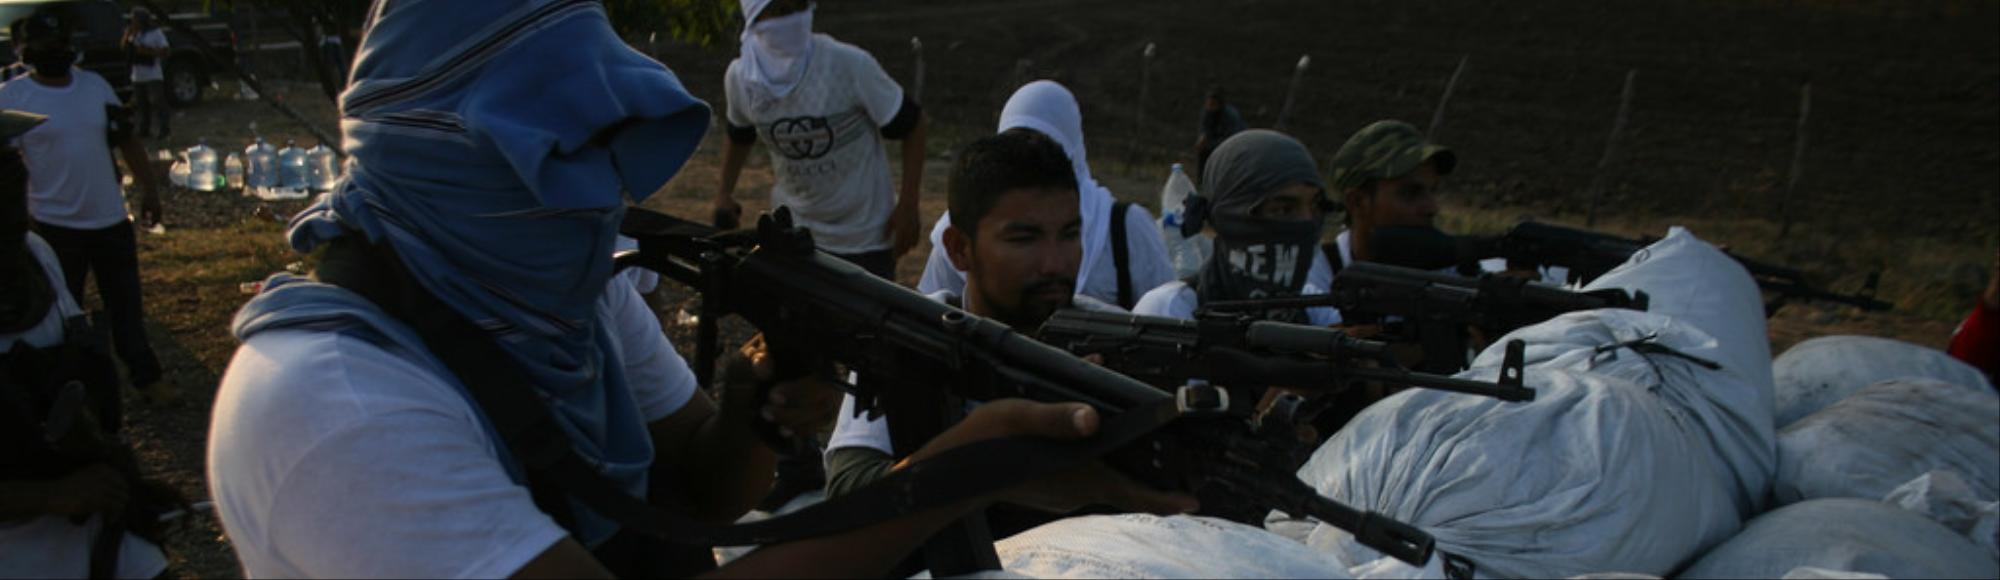 Mexico's Self-Defense Militias Are Refusing to Lay Down Arms in Fight Against Cartel